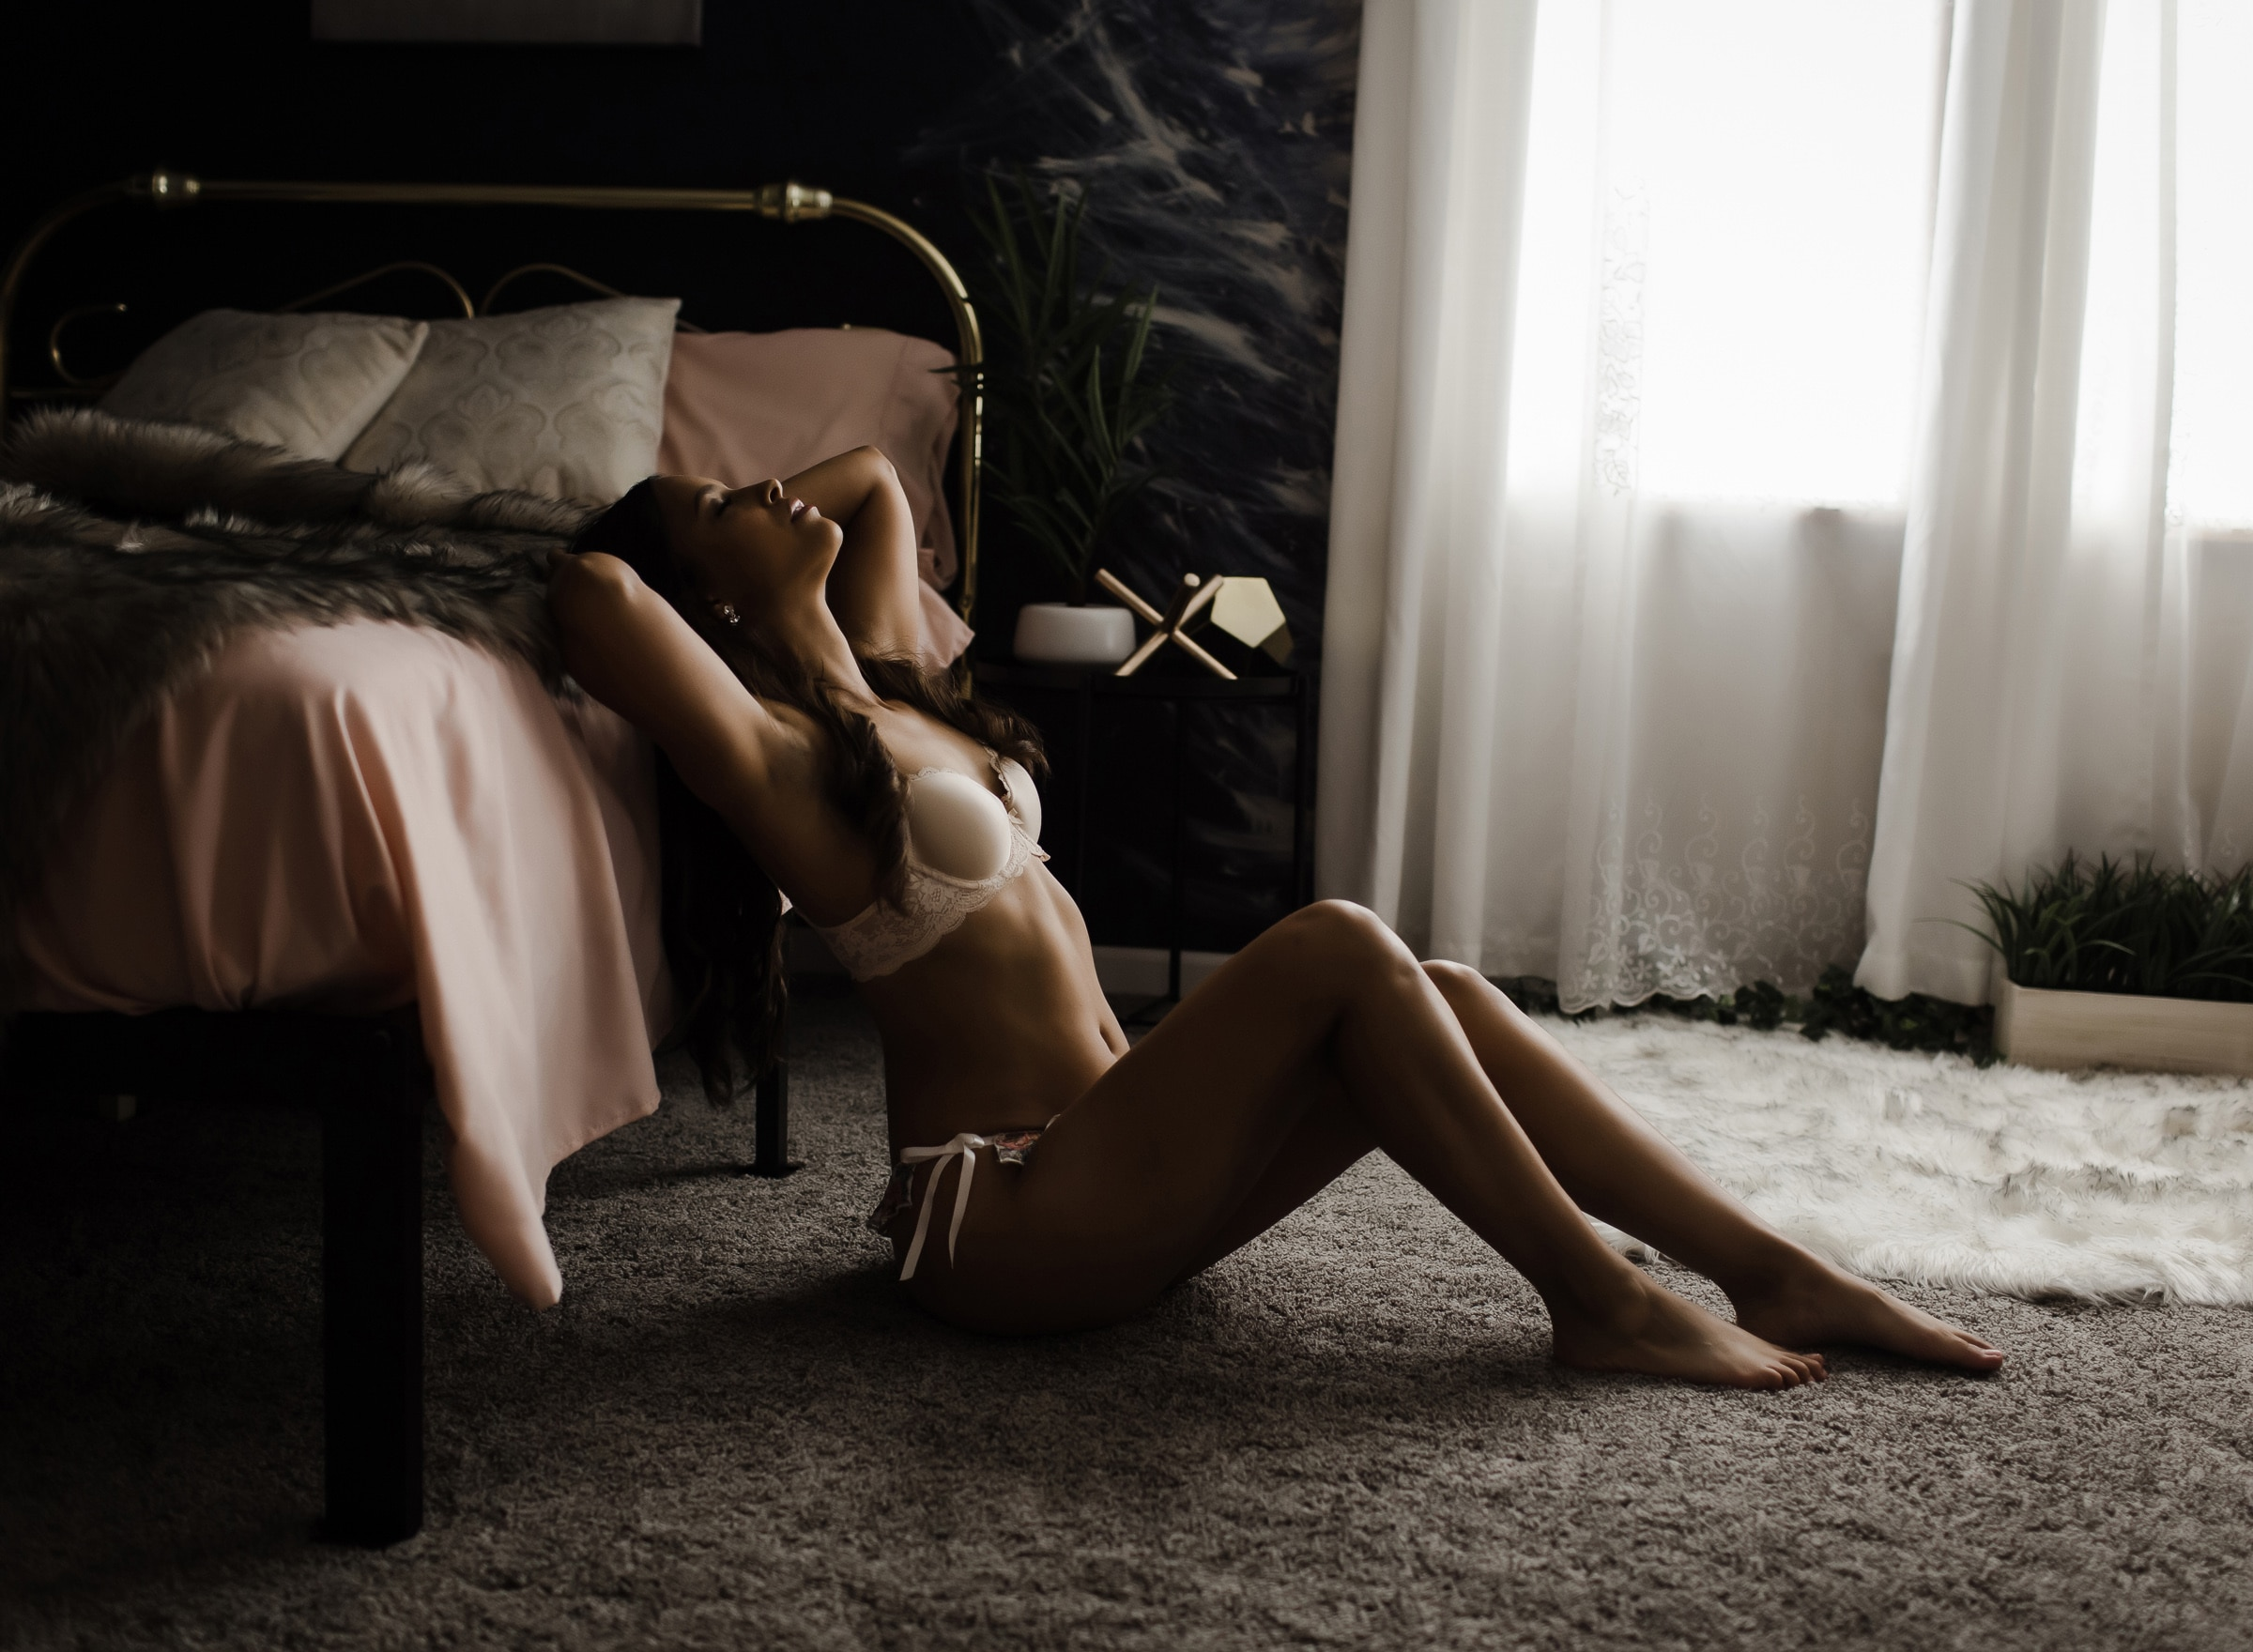 woman-sitting-on-floor-arching-back-over-bed